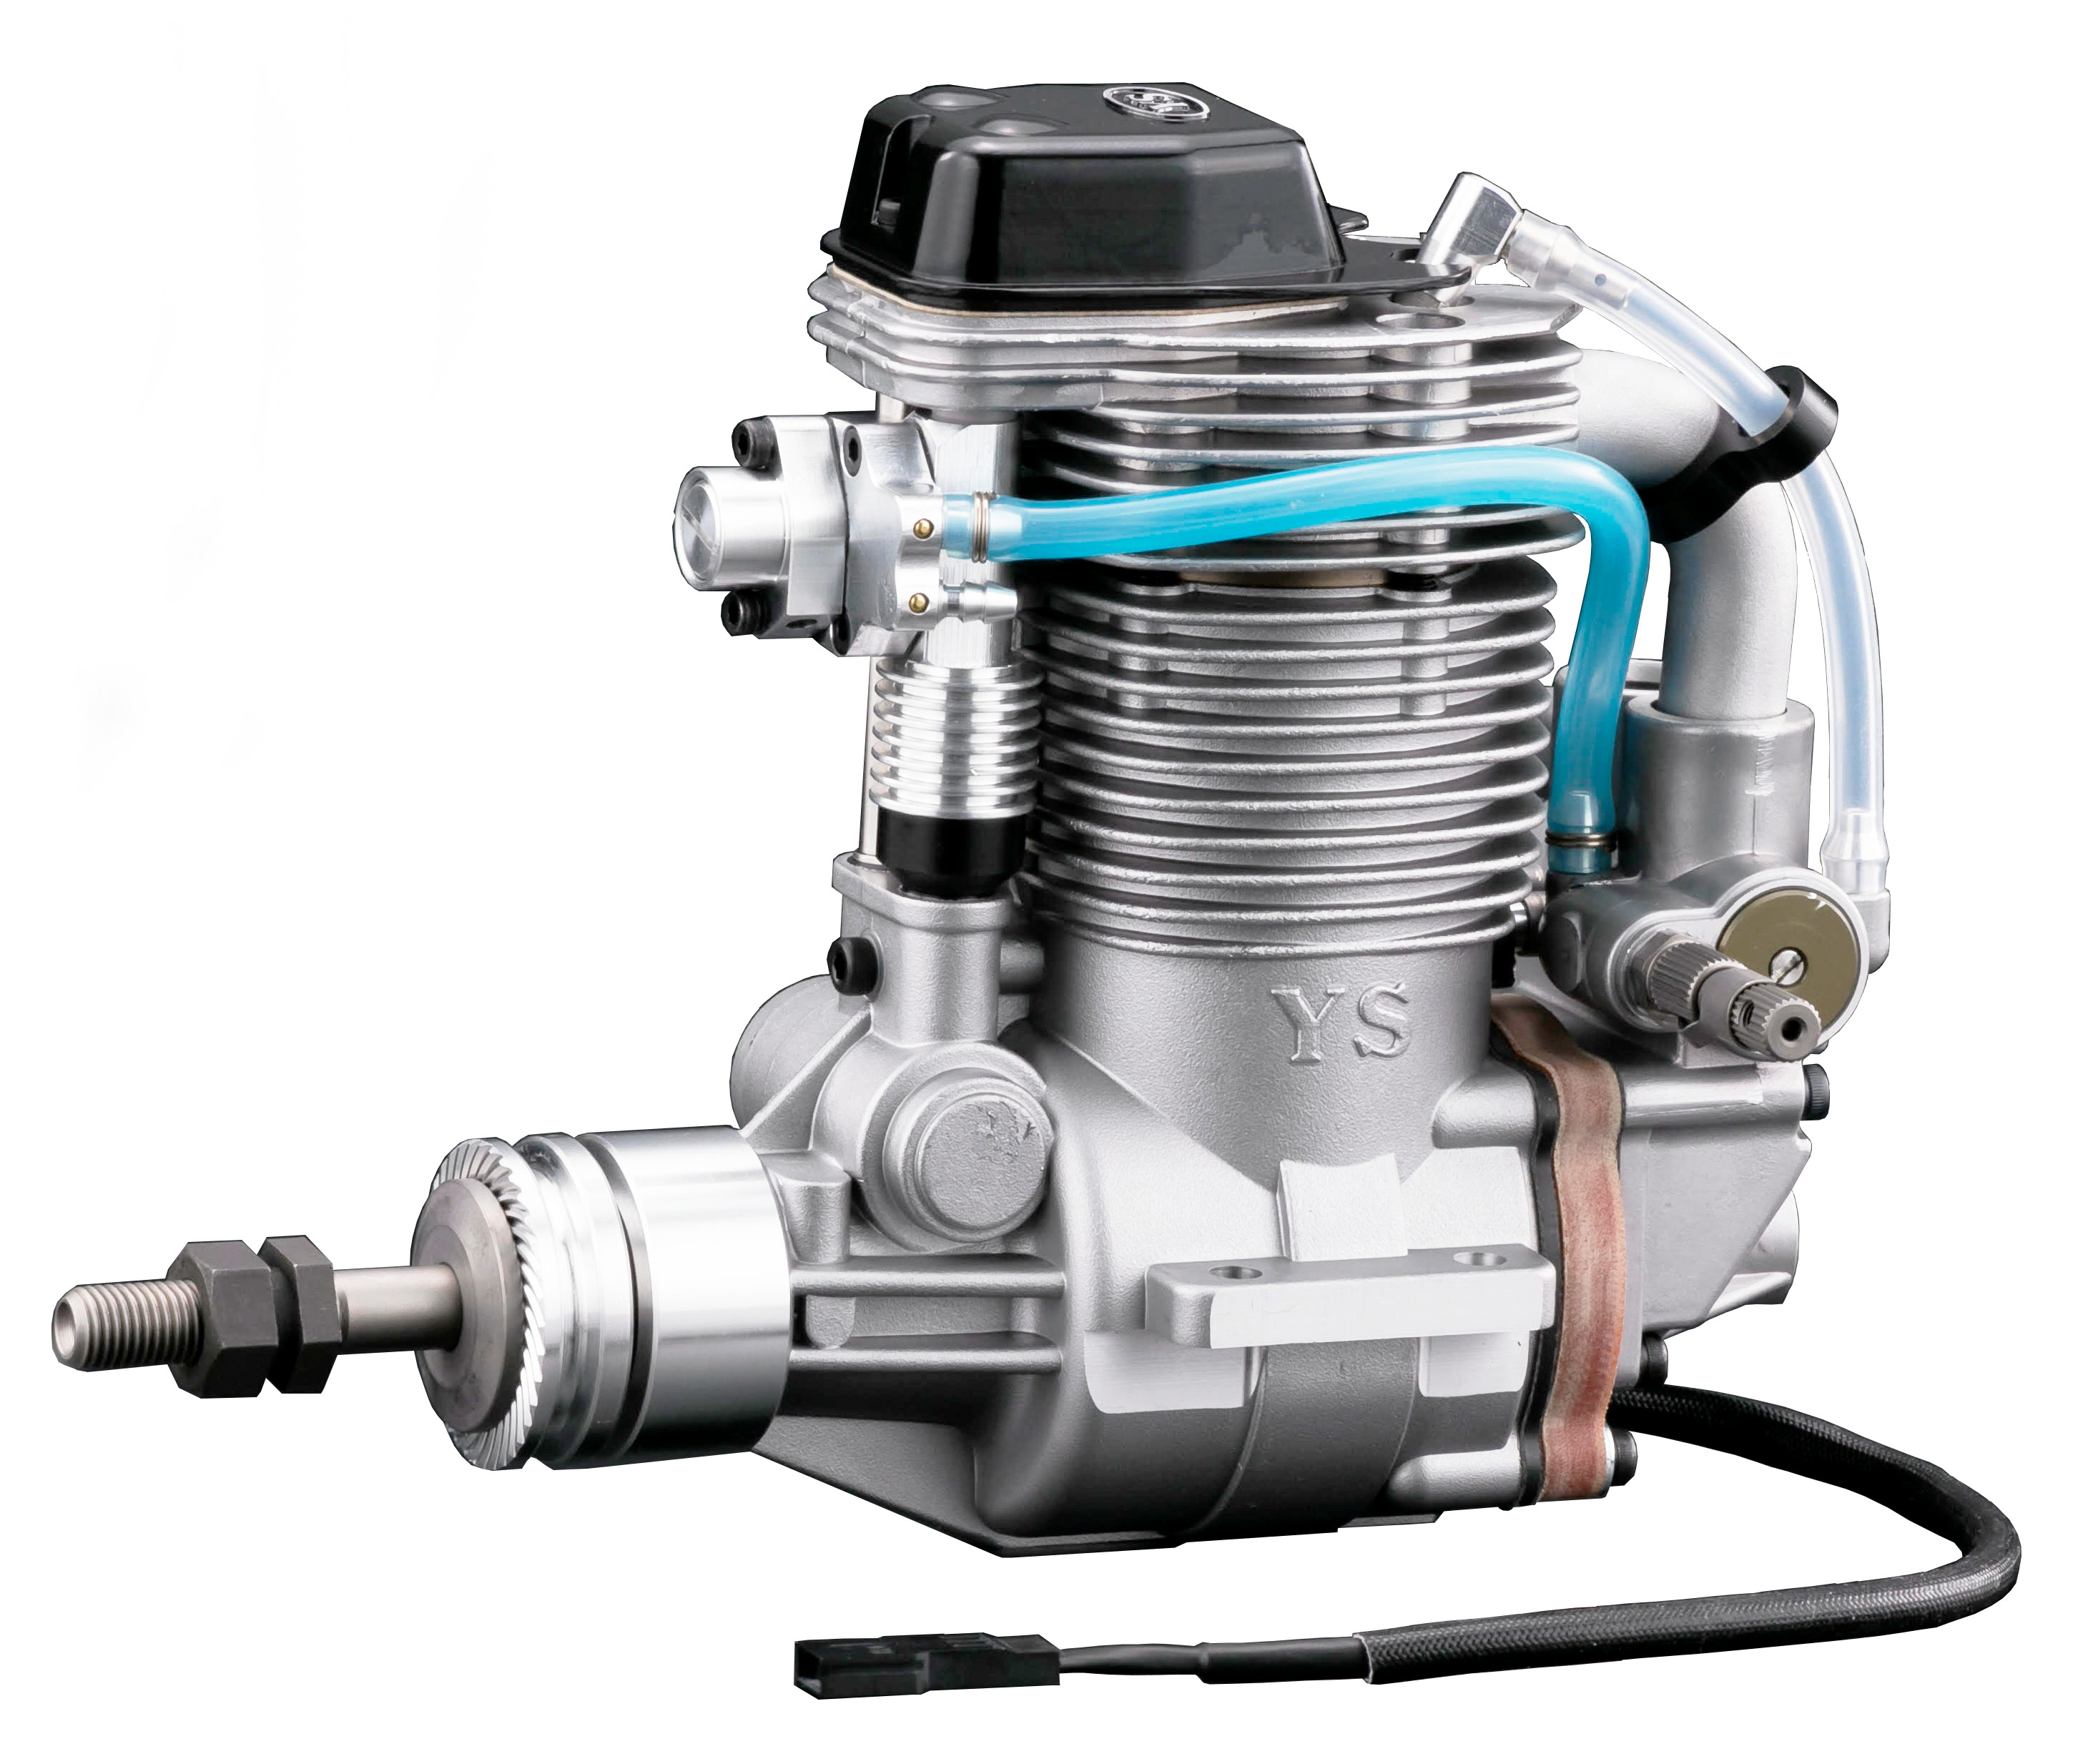 YS DZ200cdi 4-STROKE GLOW ENGINE Description: